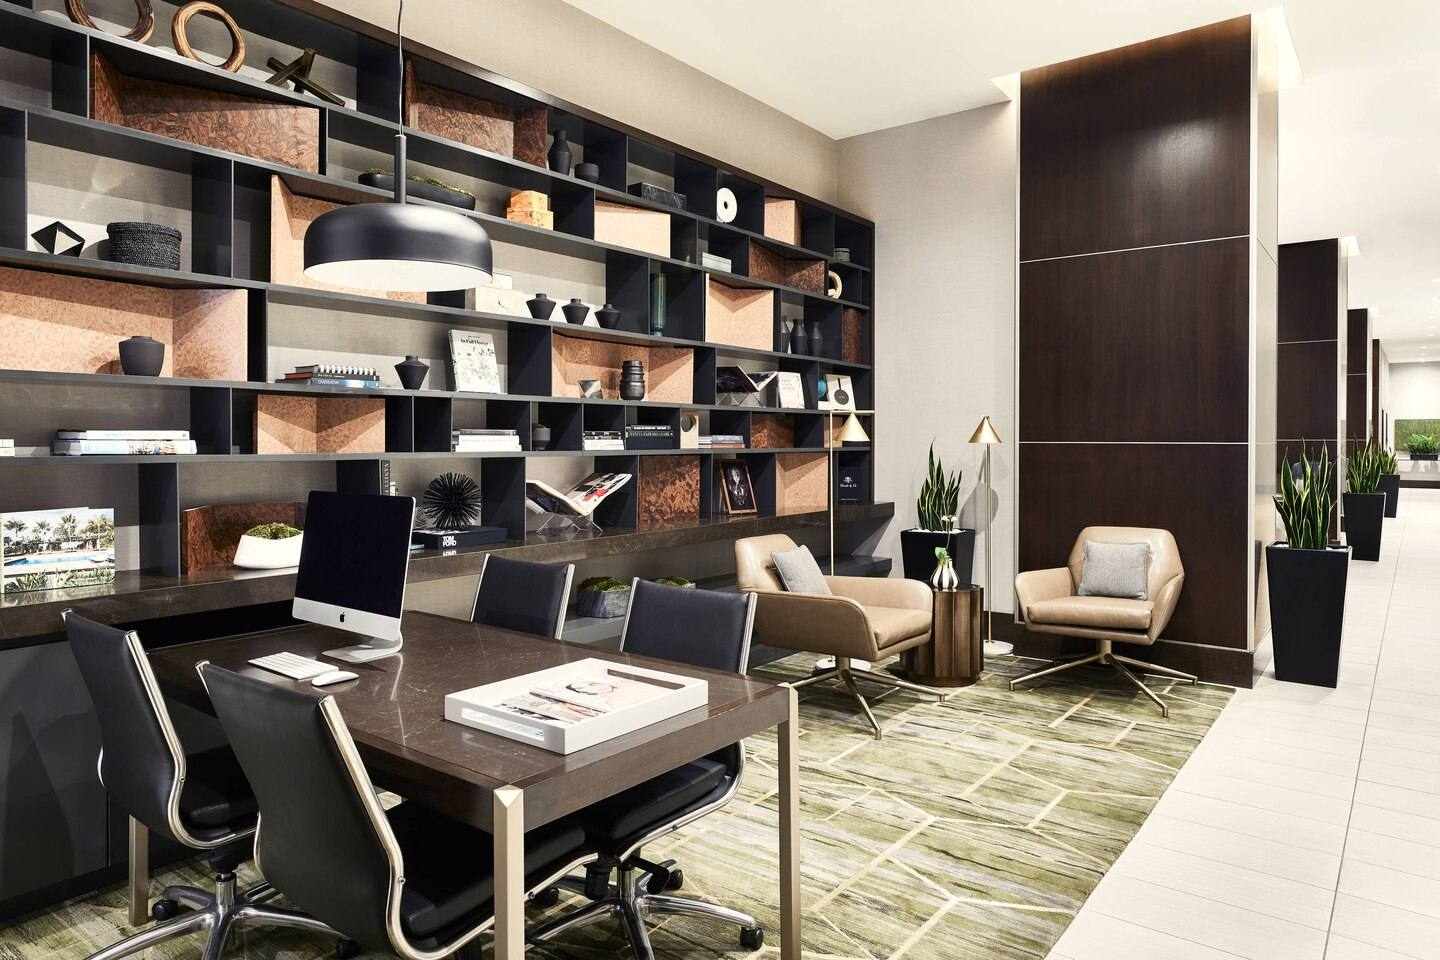 AC Library & Business Center at the AC Hotel Beverly Hills